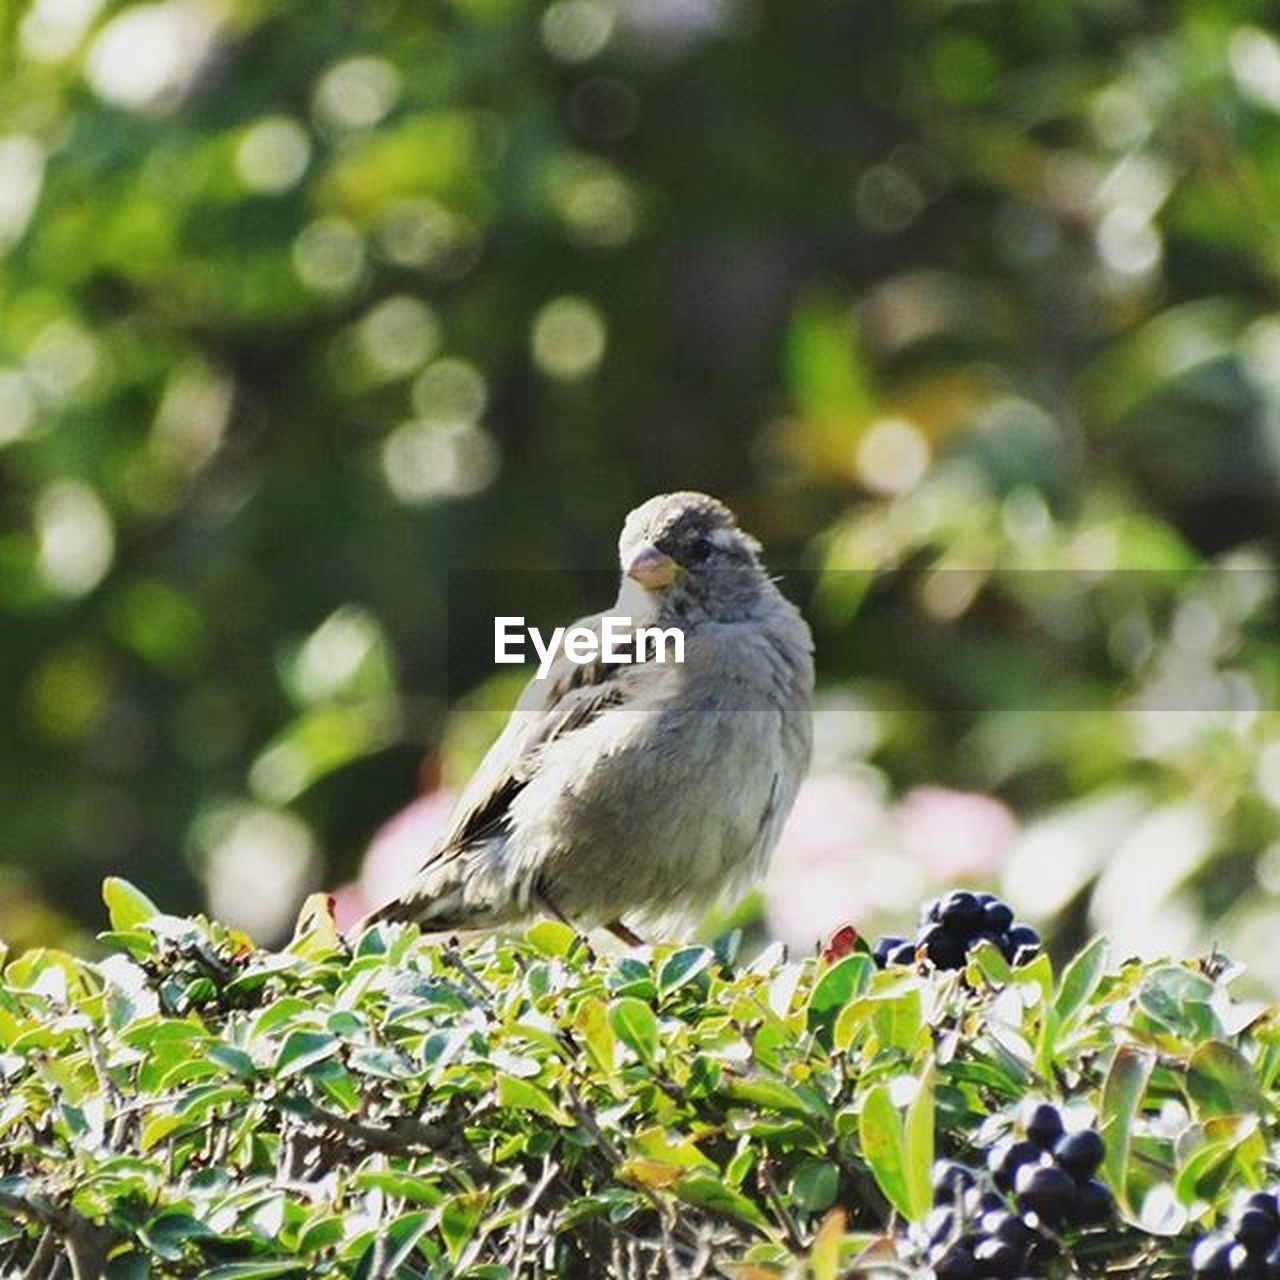 bird, one animal, animals in the wild, animal themes, animal wildlife, day, perching, green color, leaf, outdoors, no people, nature, branch, tree, sunlight, growth, plant, sparrow, close-up, beauty in nature, bird of prey